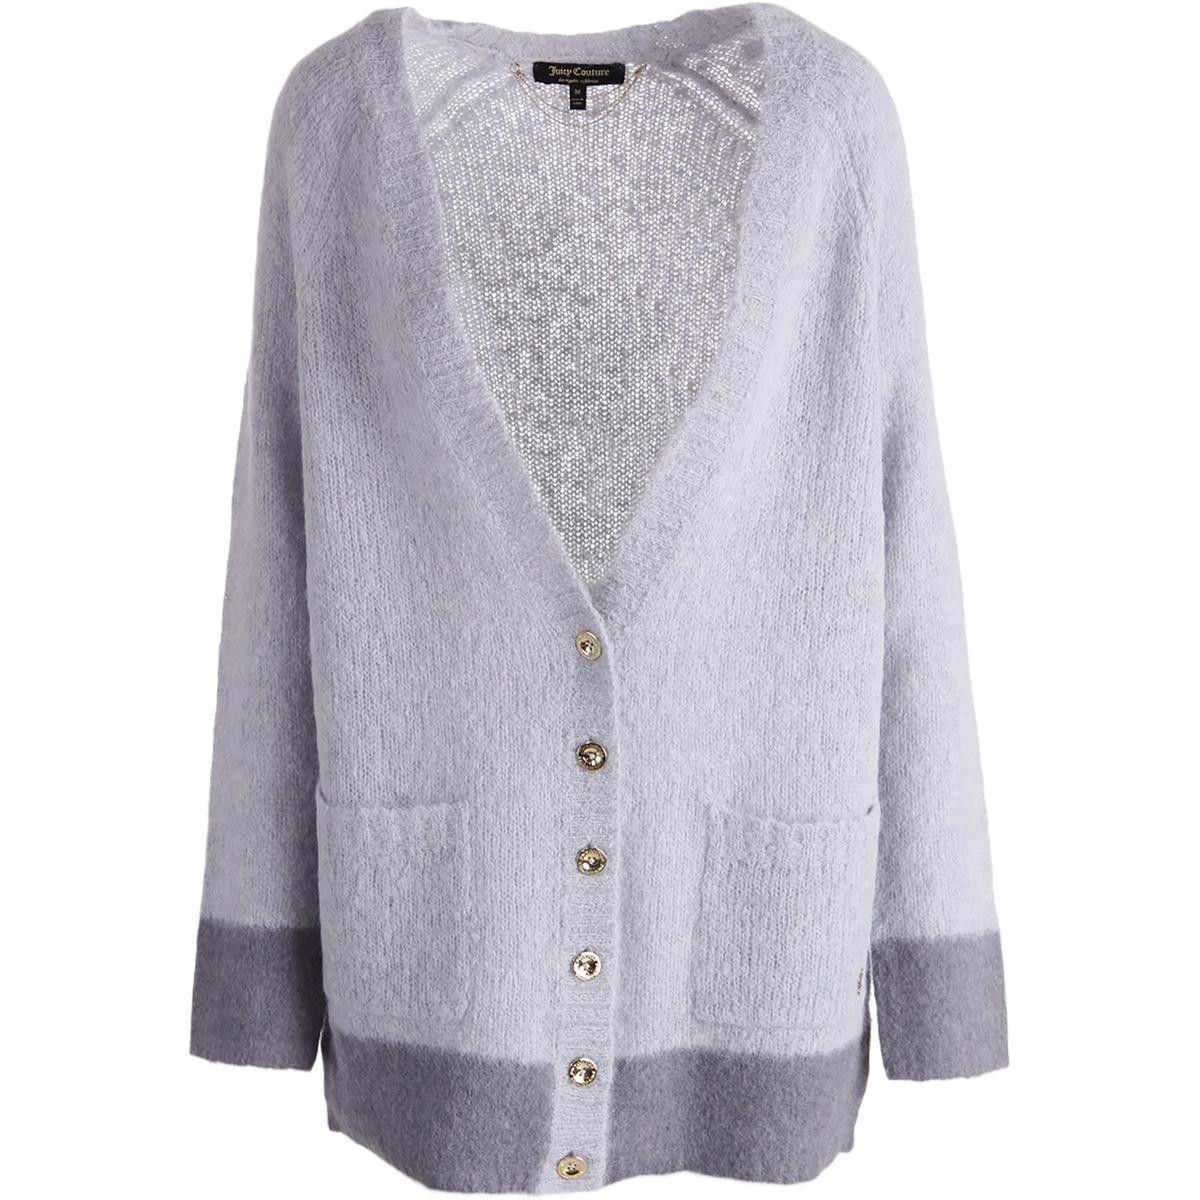 Juicy Couture Black Label Womens Needle Punch Mohair Cardigan ... 792e5df21